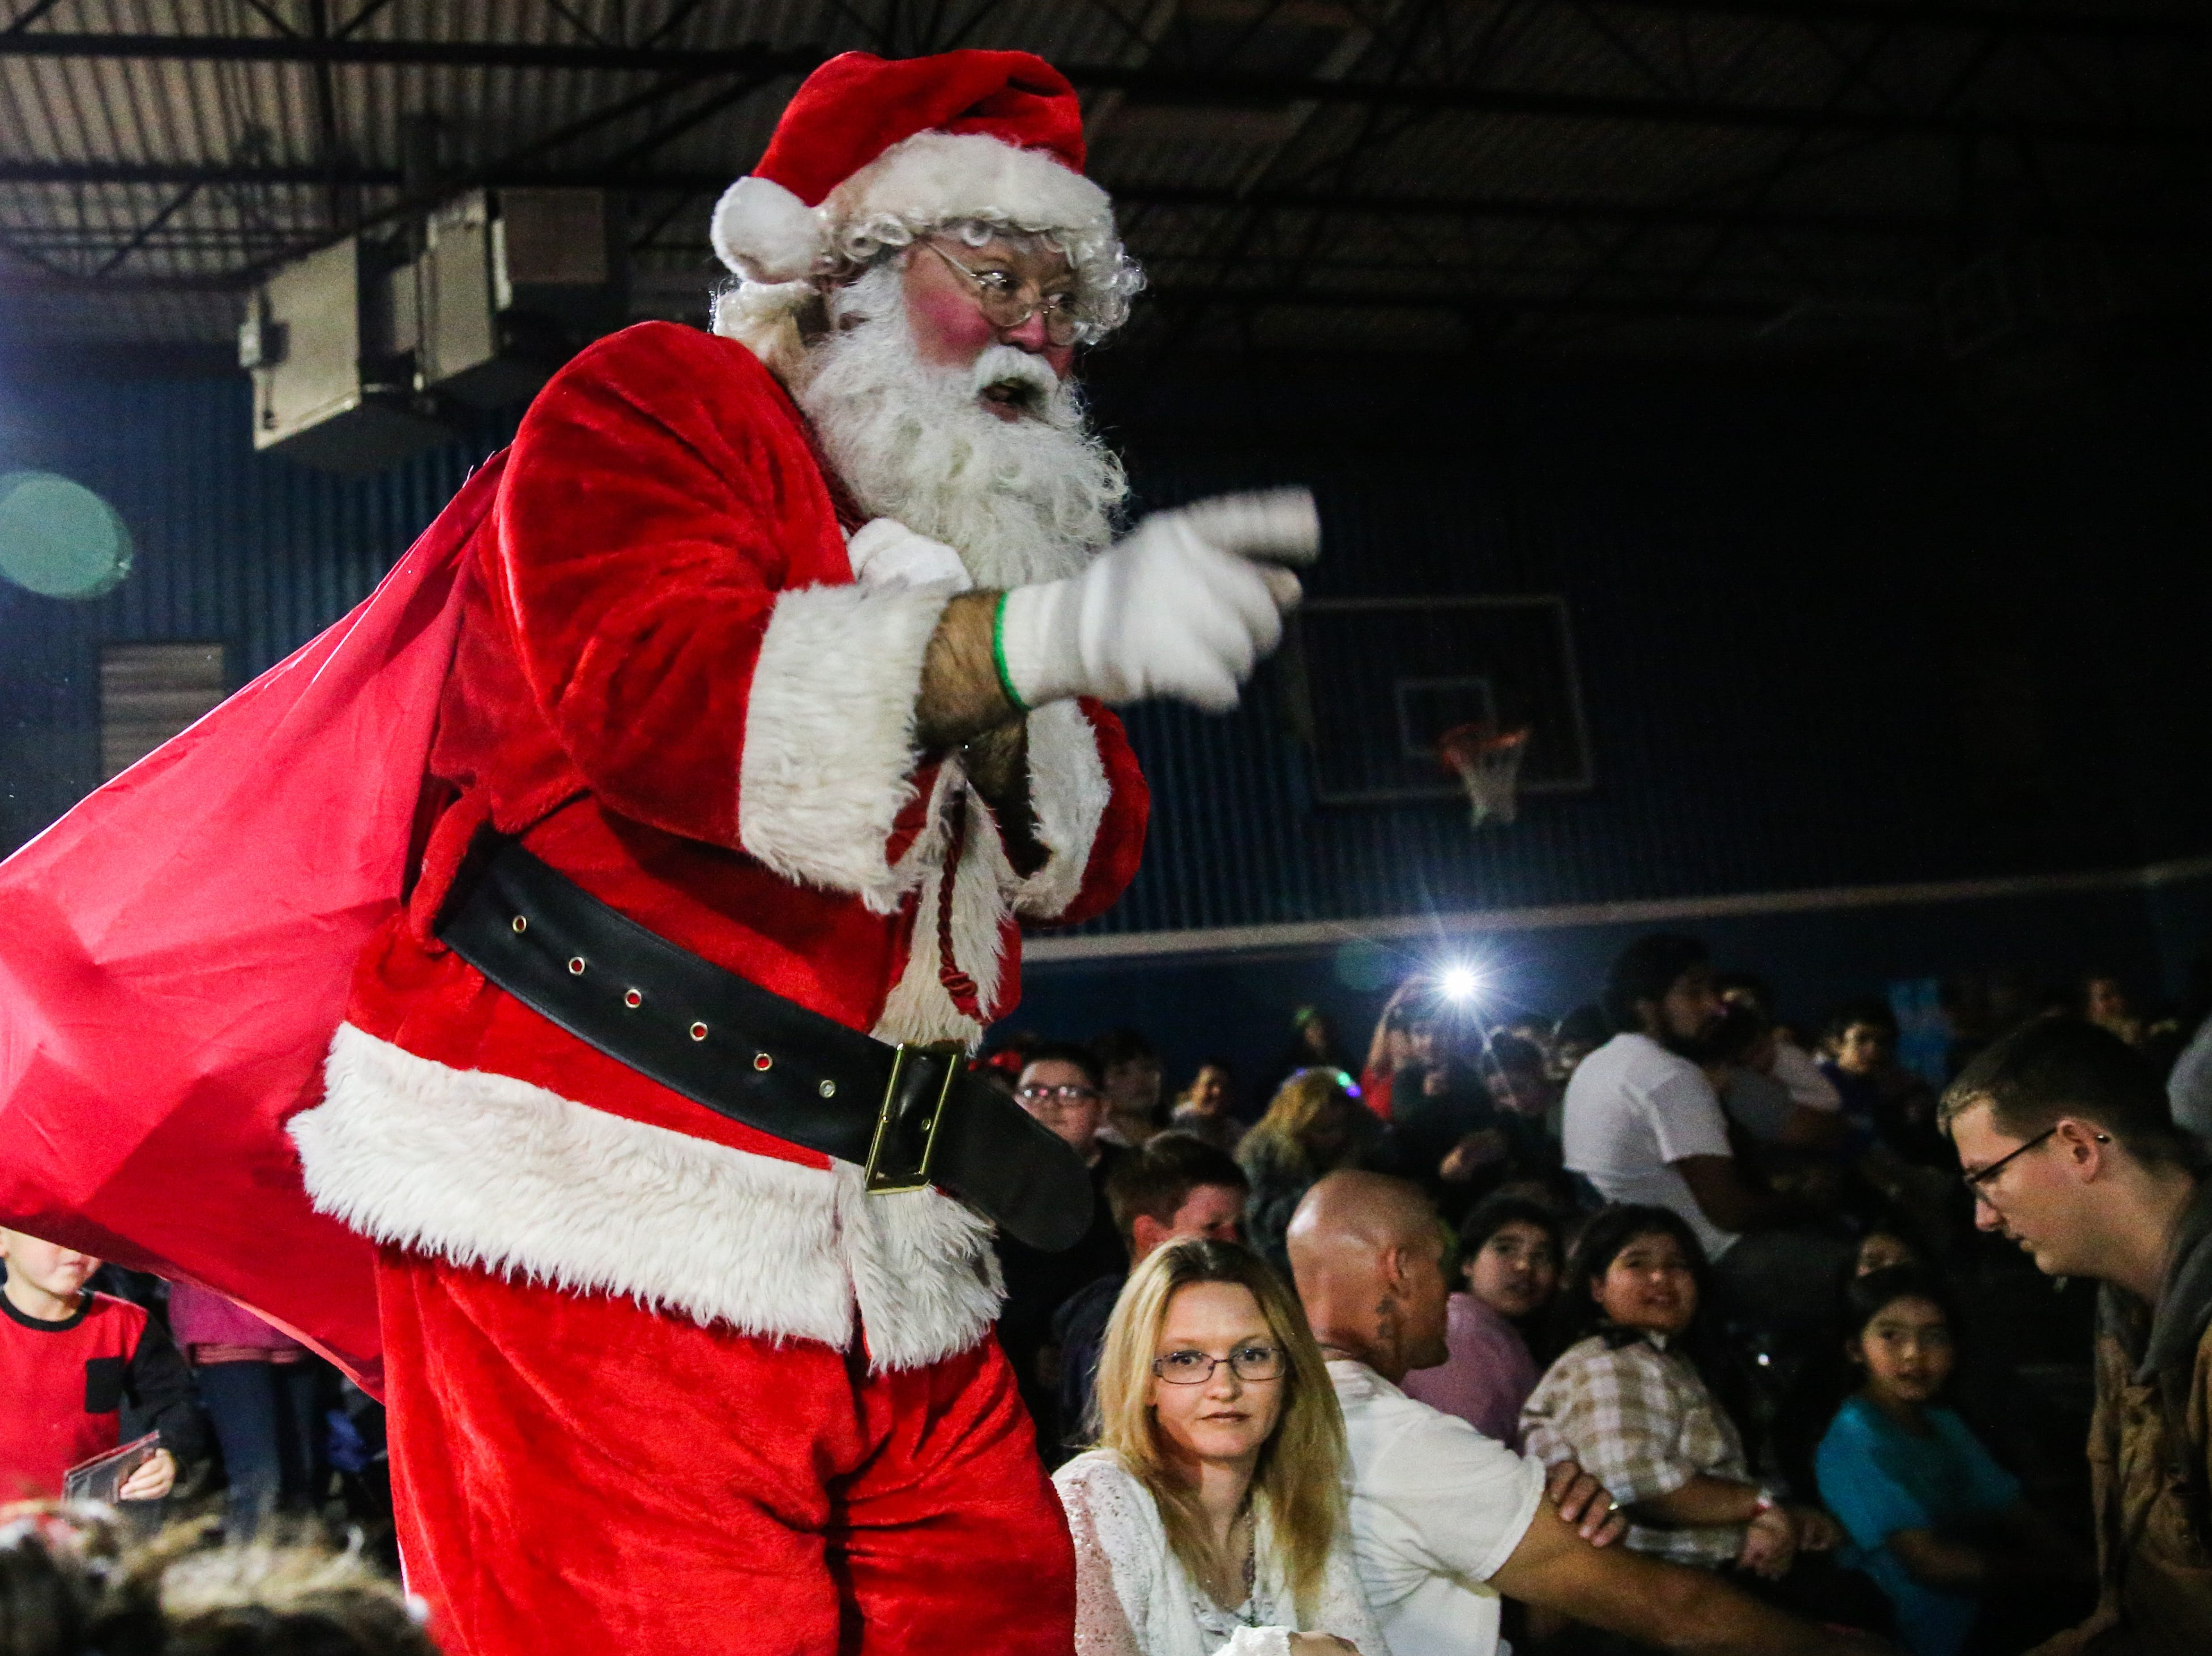 Santa makes his way through the crowd at the In the Spirit of Christmas party Saturday, Dec. 15, 2018, at the Southside Recreation Center.